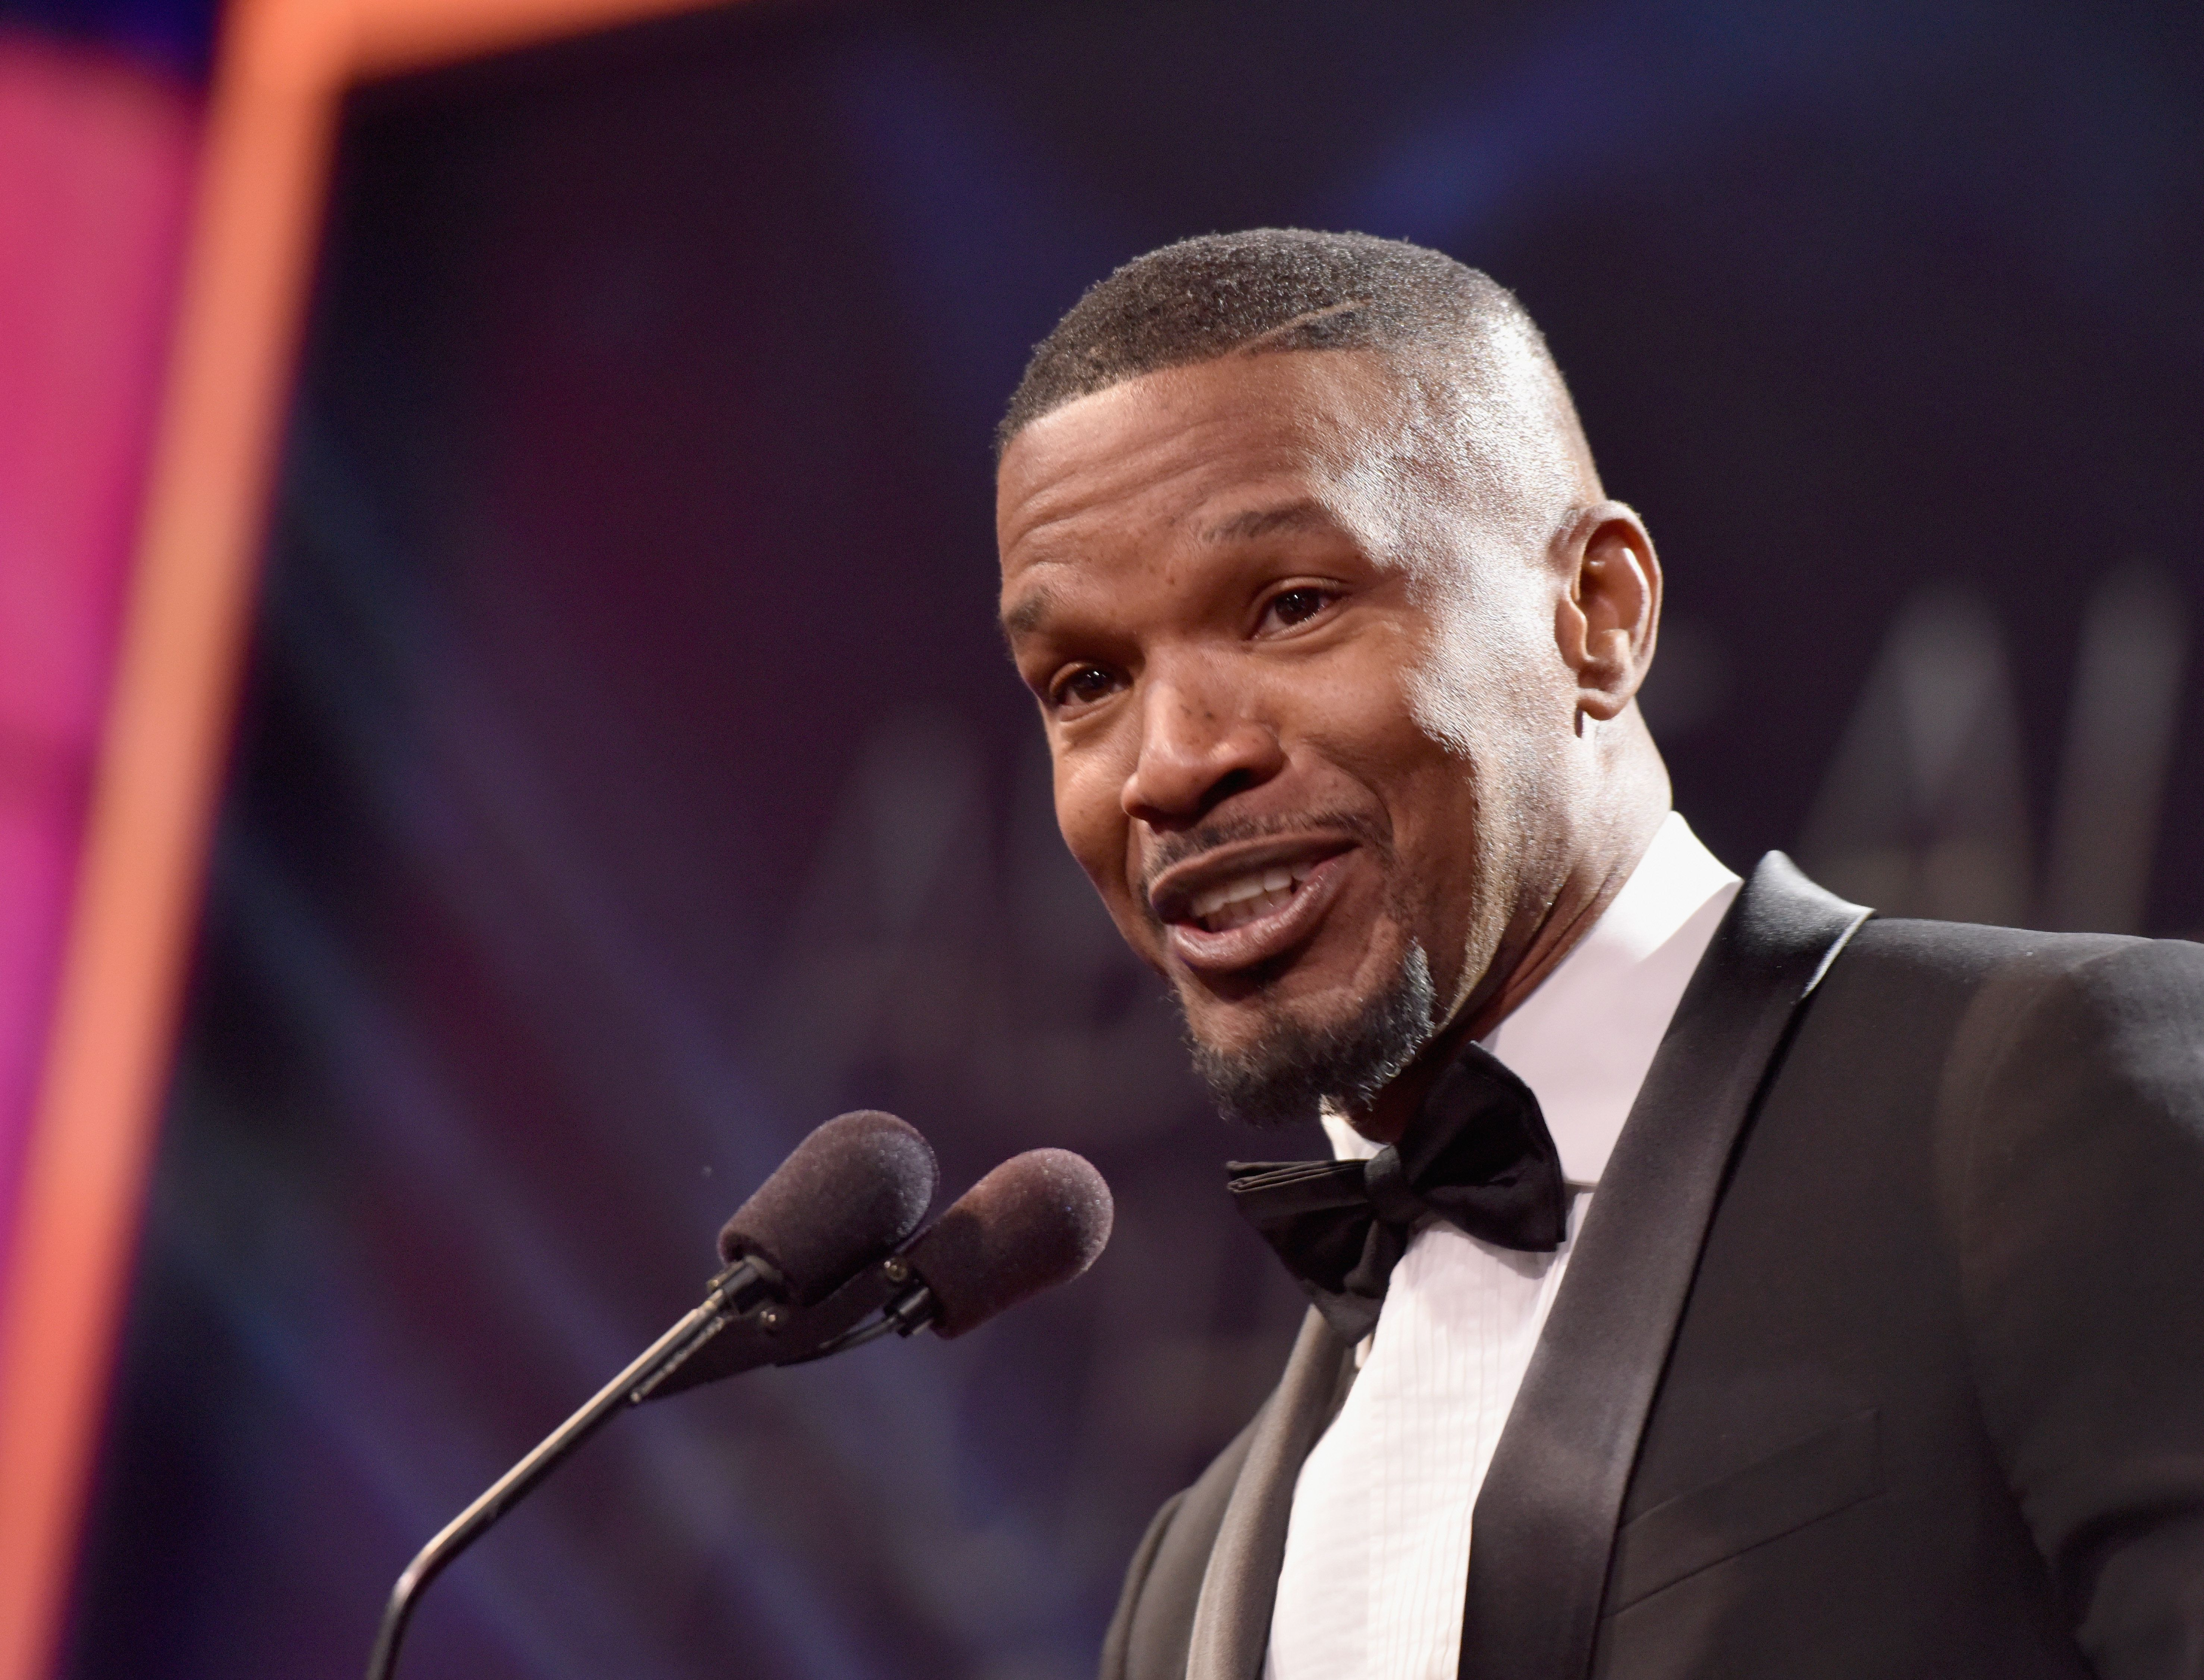 BEVERLY HILLS, CA - FEBRUARY 21:  Actor Jamie Foxx speaks onstage during the 2016 ABFF Awards: A Celebration Of Hollywood at The Beverly Hilton Hotel on February 21, 2016 in Beverly Hills, California.  (Photo by Earl Gibson/BET/Getty Images for BET)